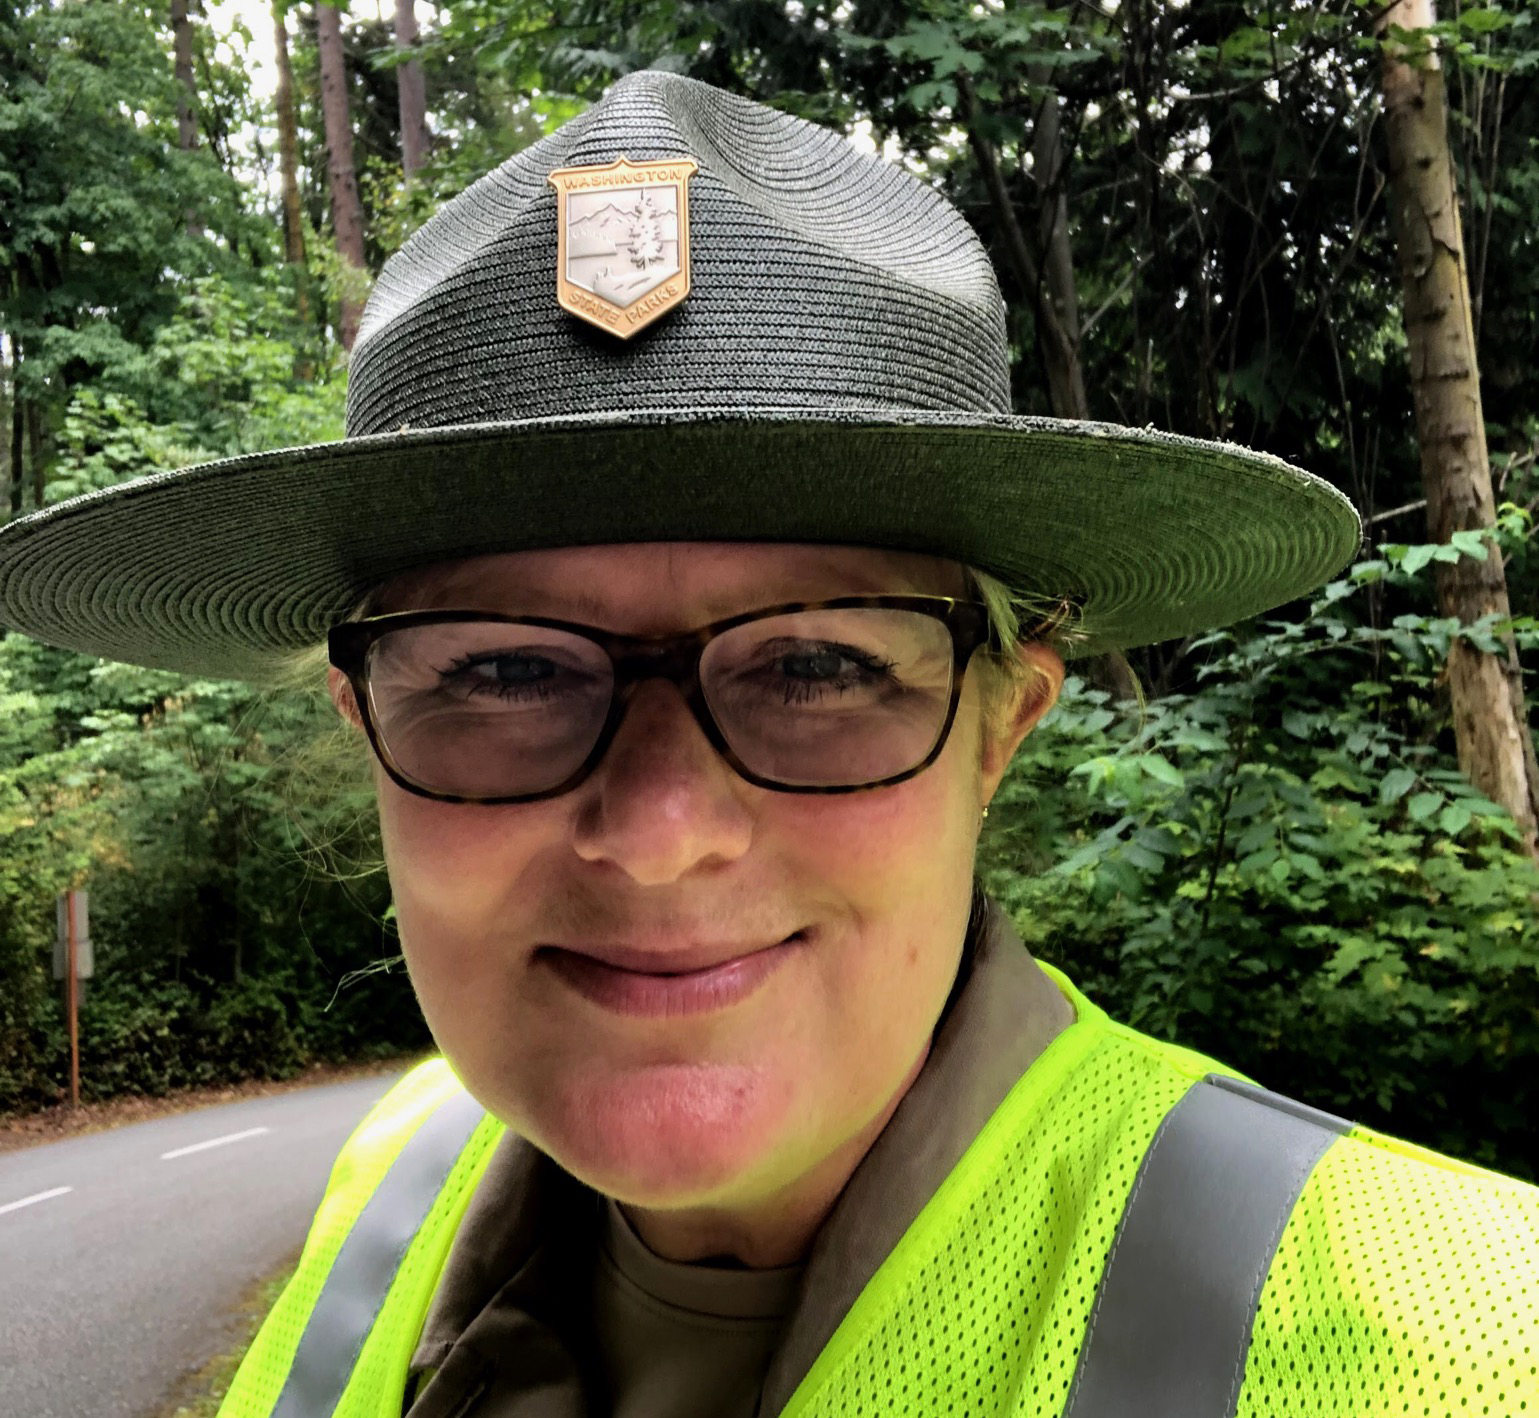 Amber wears her uniform, including a flat brimmed hat and colorful safety vest.